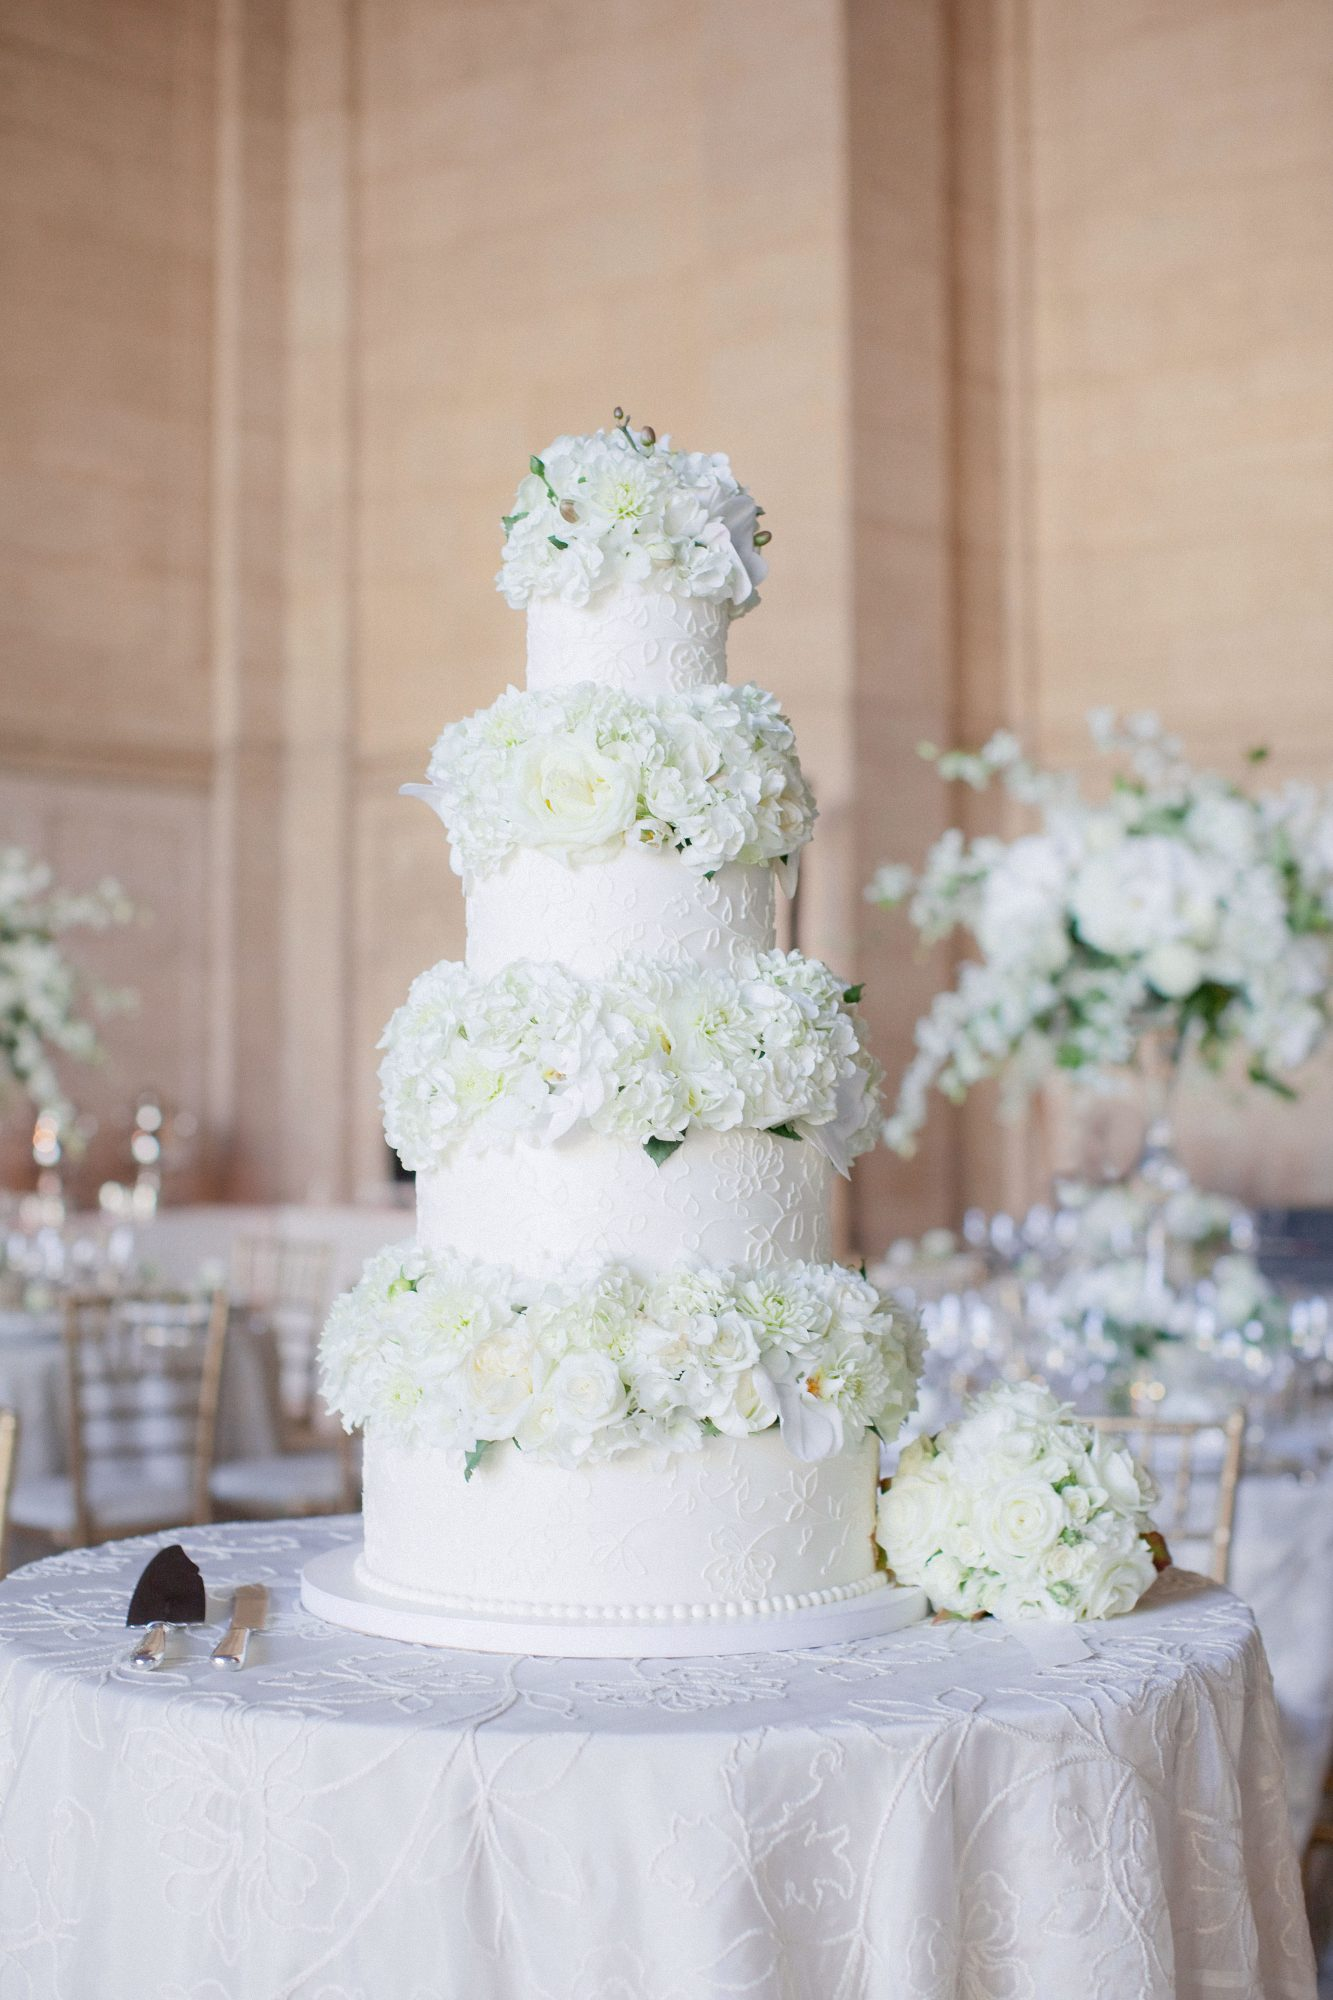 cakes with floral tiers alternating flower-piped bloom layers